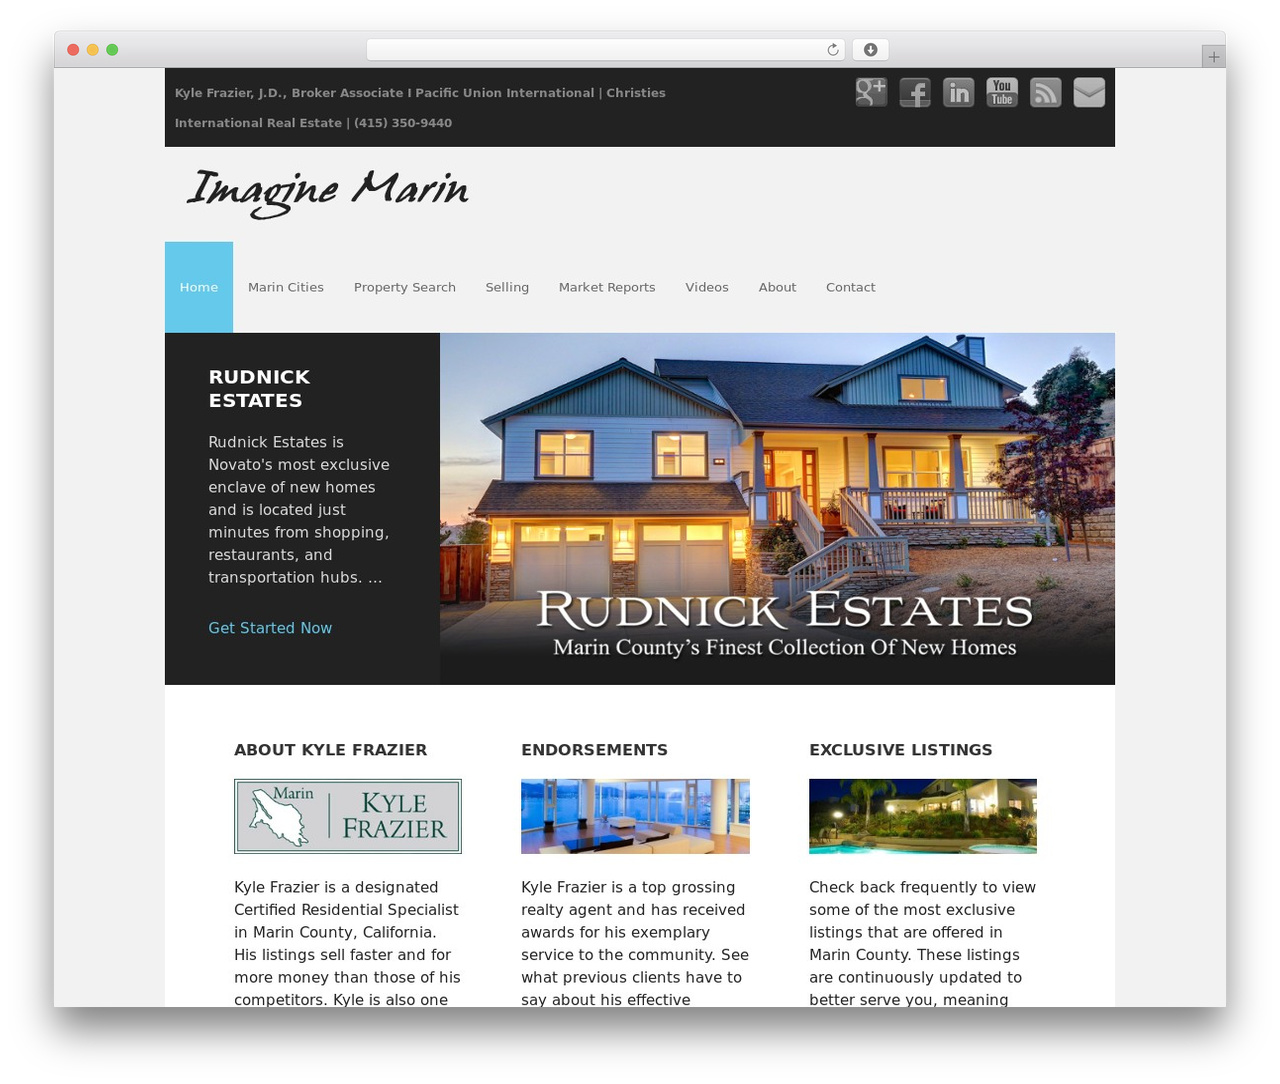 Executive Child Theme WP theme - imaginemarin.com